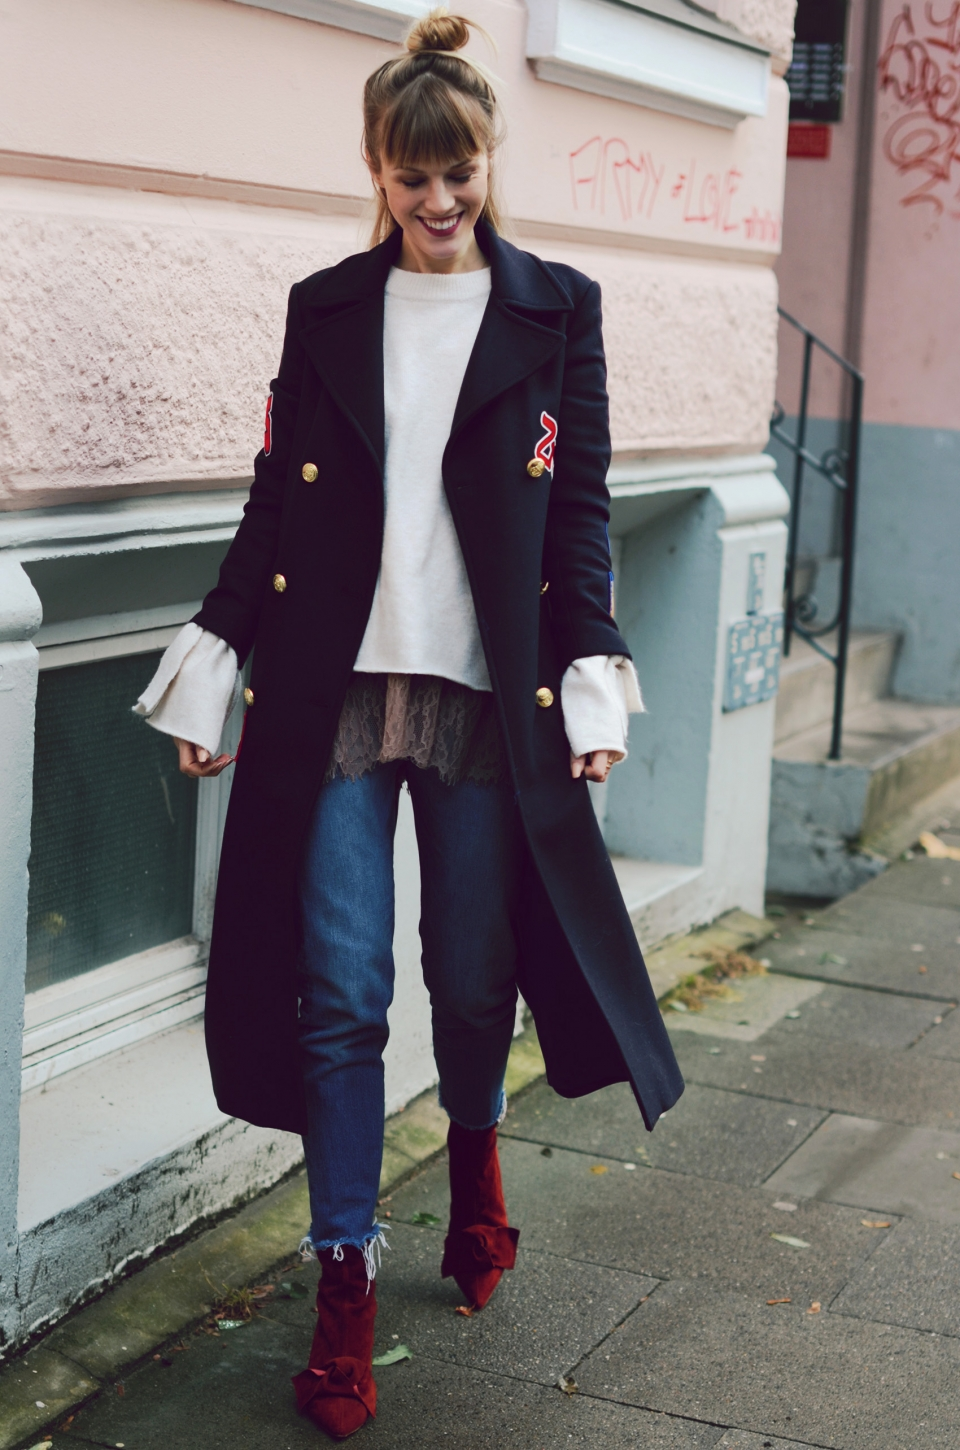 Long dark blue coat, red suede boots, knitted sweater